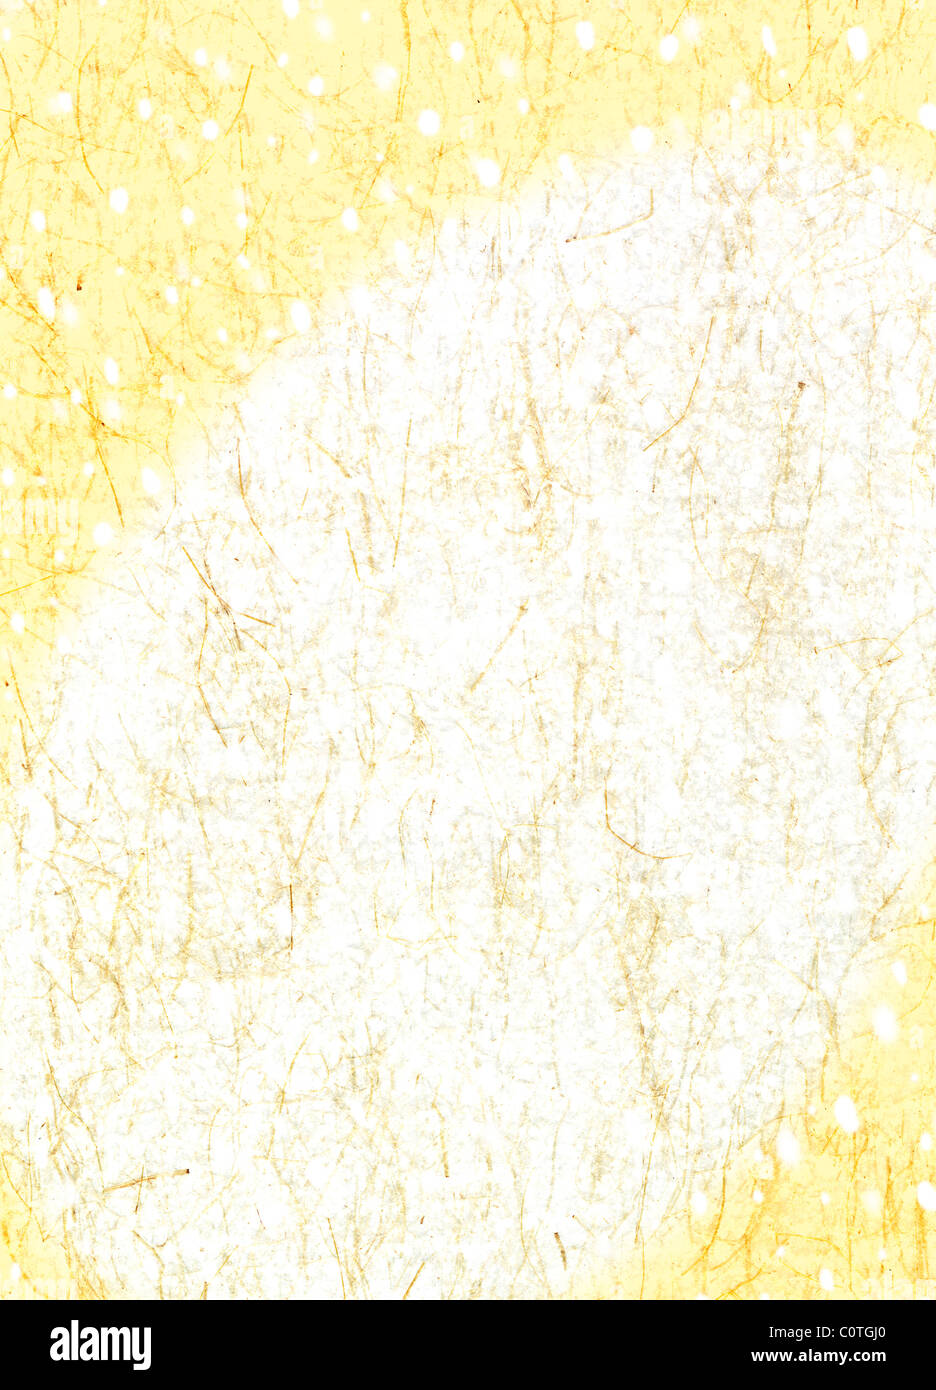 Yellow and White Backgrounds - Stock Image